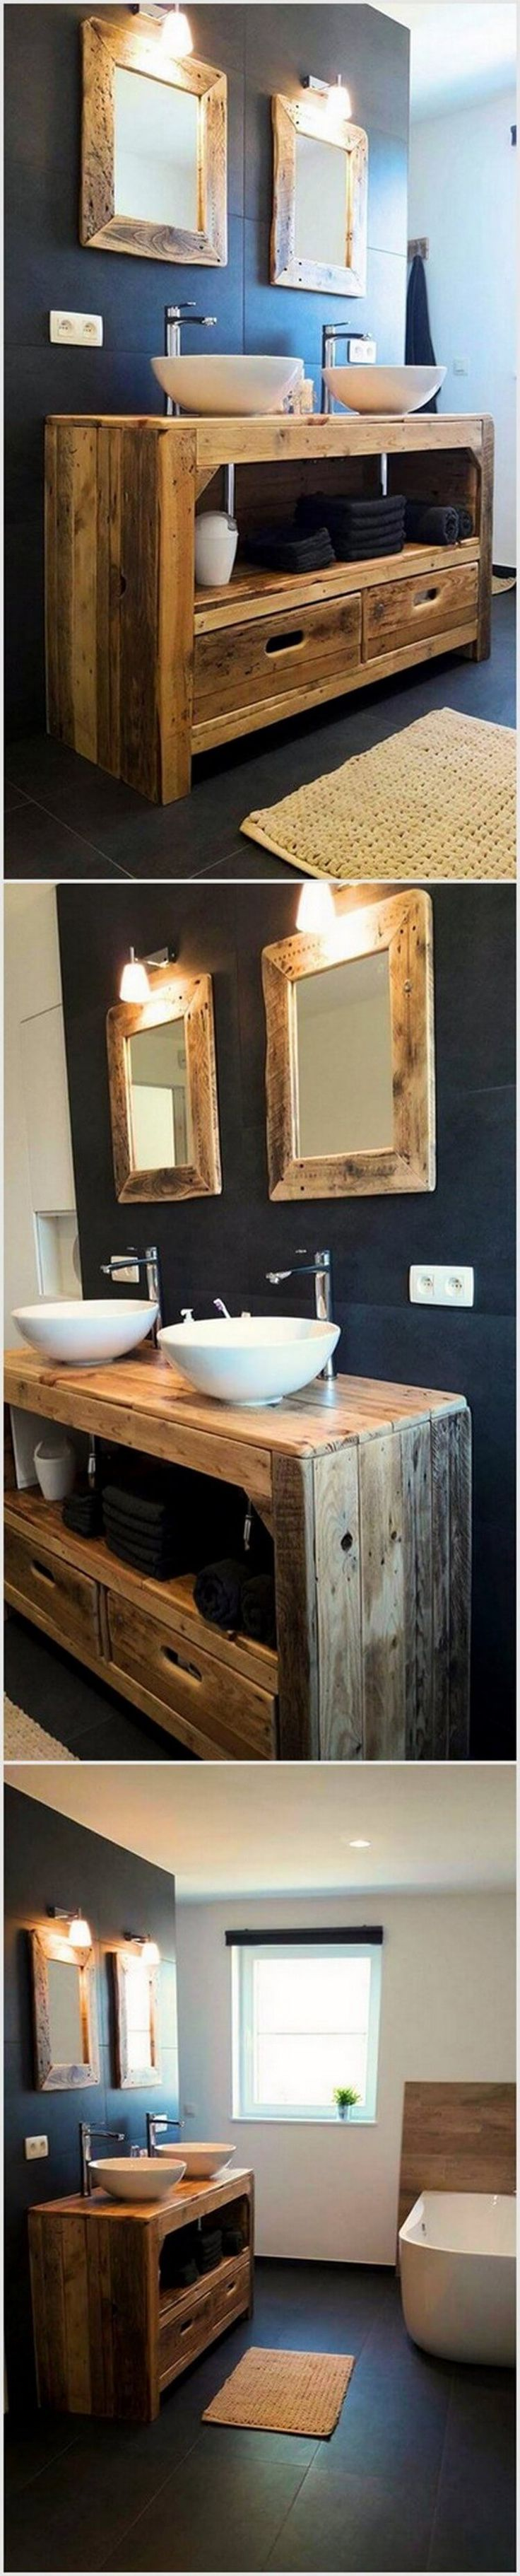 You can make bathroom furniture by using old shipping wood pallets. You can adorn your bathroom with these lovely pallet wood projects.